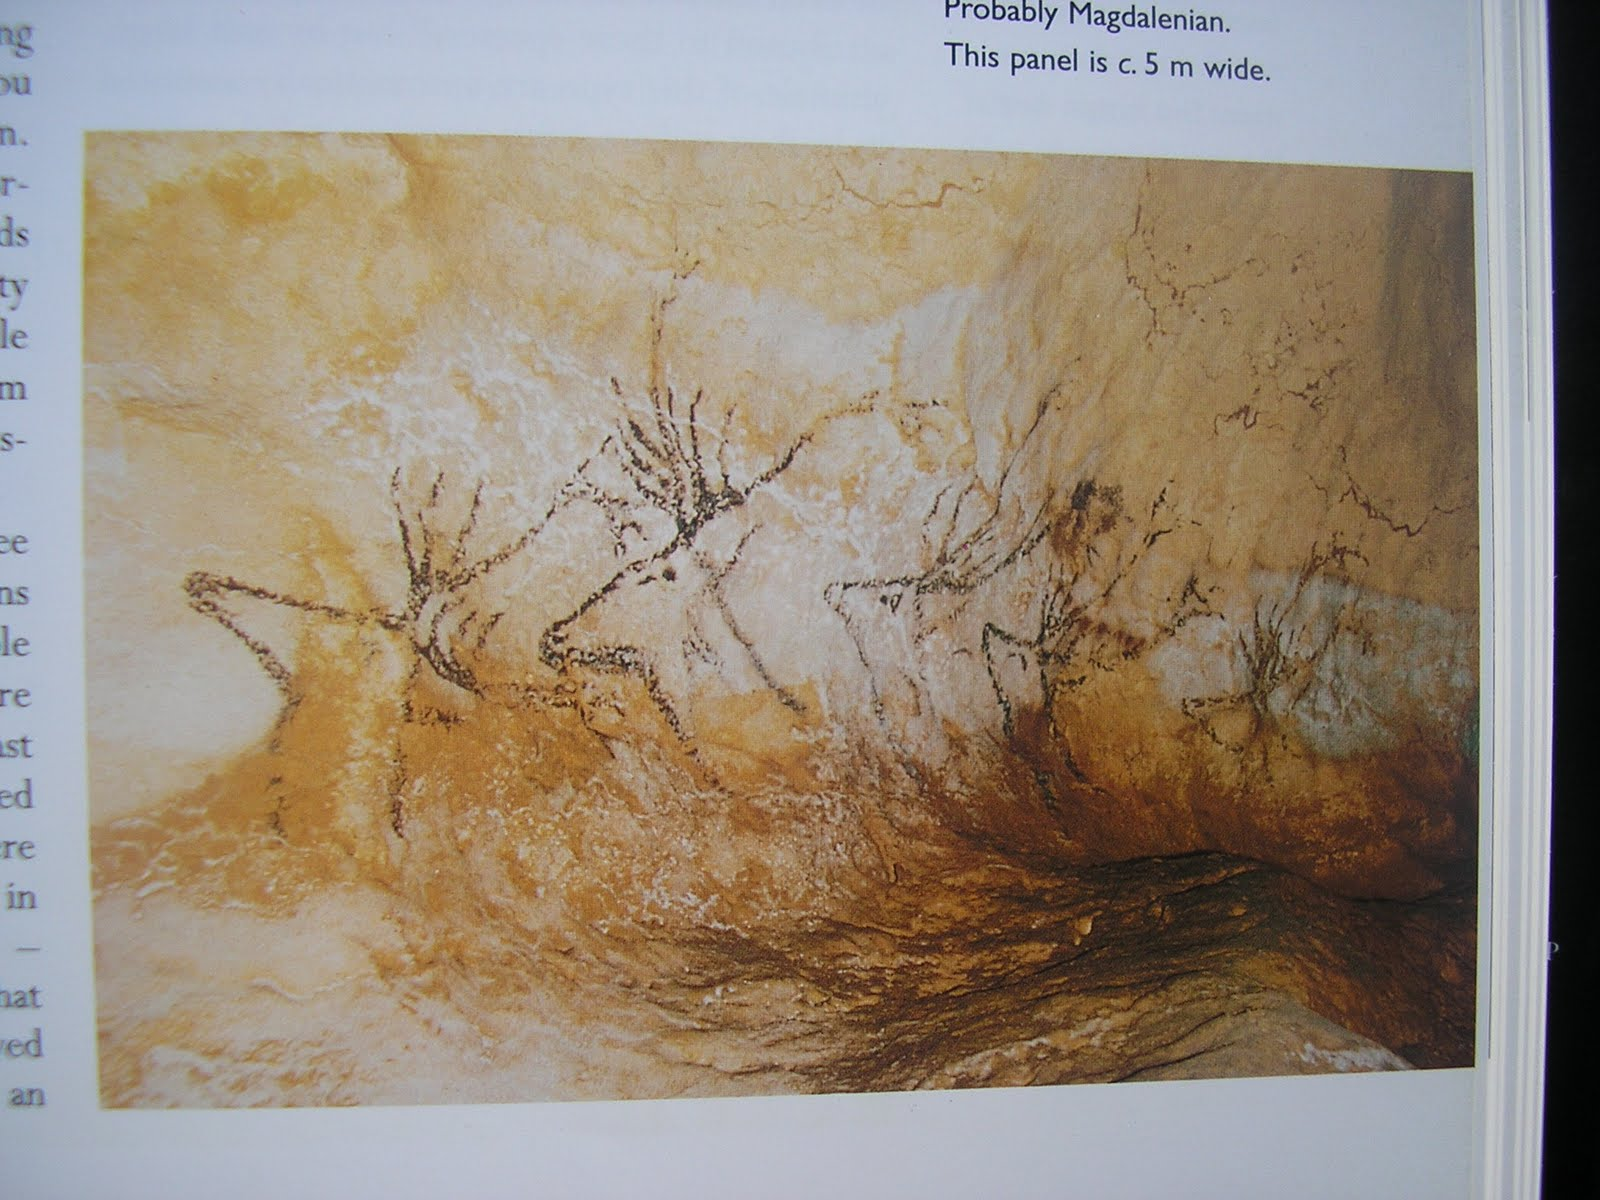 the lascaux cave essay Paris for many, the lascaux caves are the honey pot for what became artistic in the western tradition facebook twitter instagram newsletter essays what the essays what the lascaux caves facsimiles fail to capture joseph nechvatal august 7, 2015 share tweet email popular.